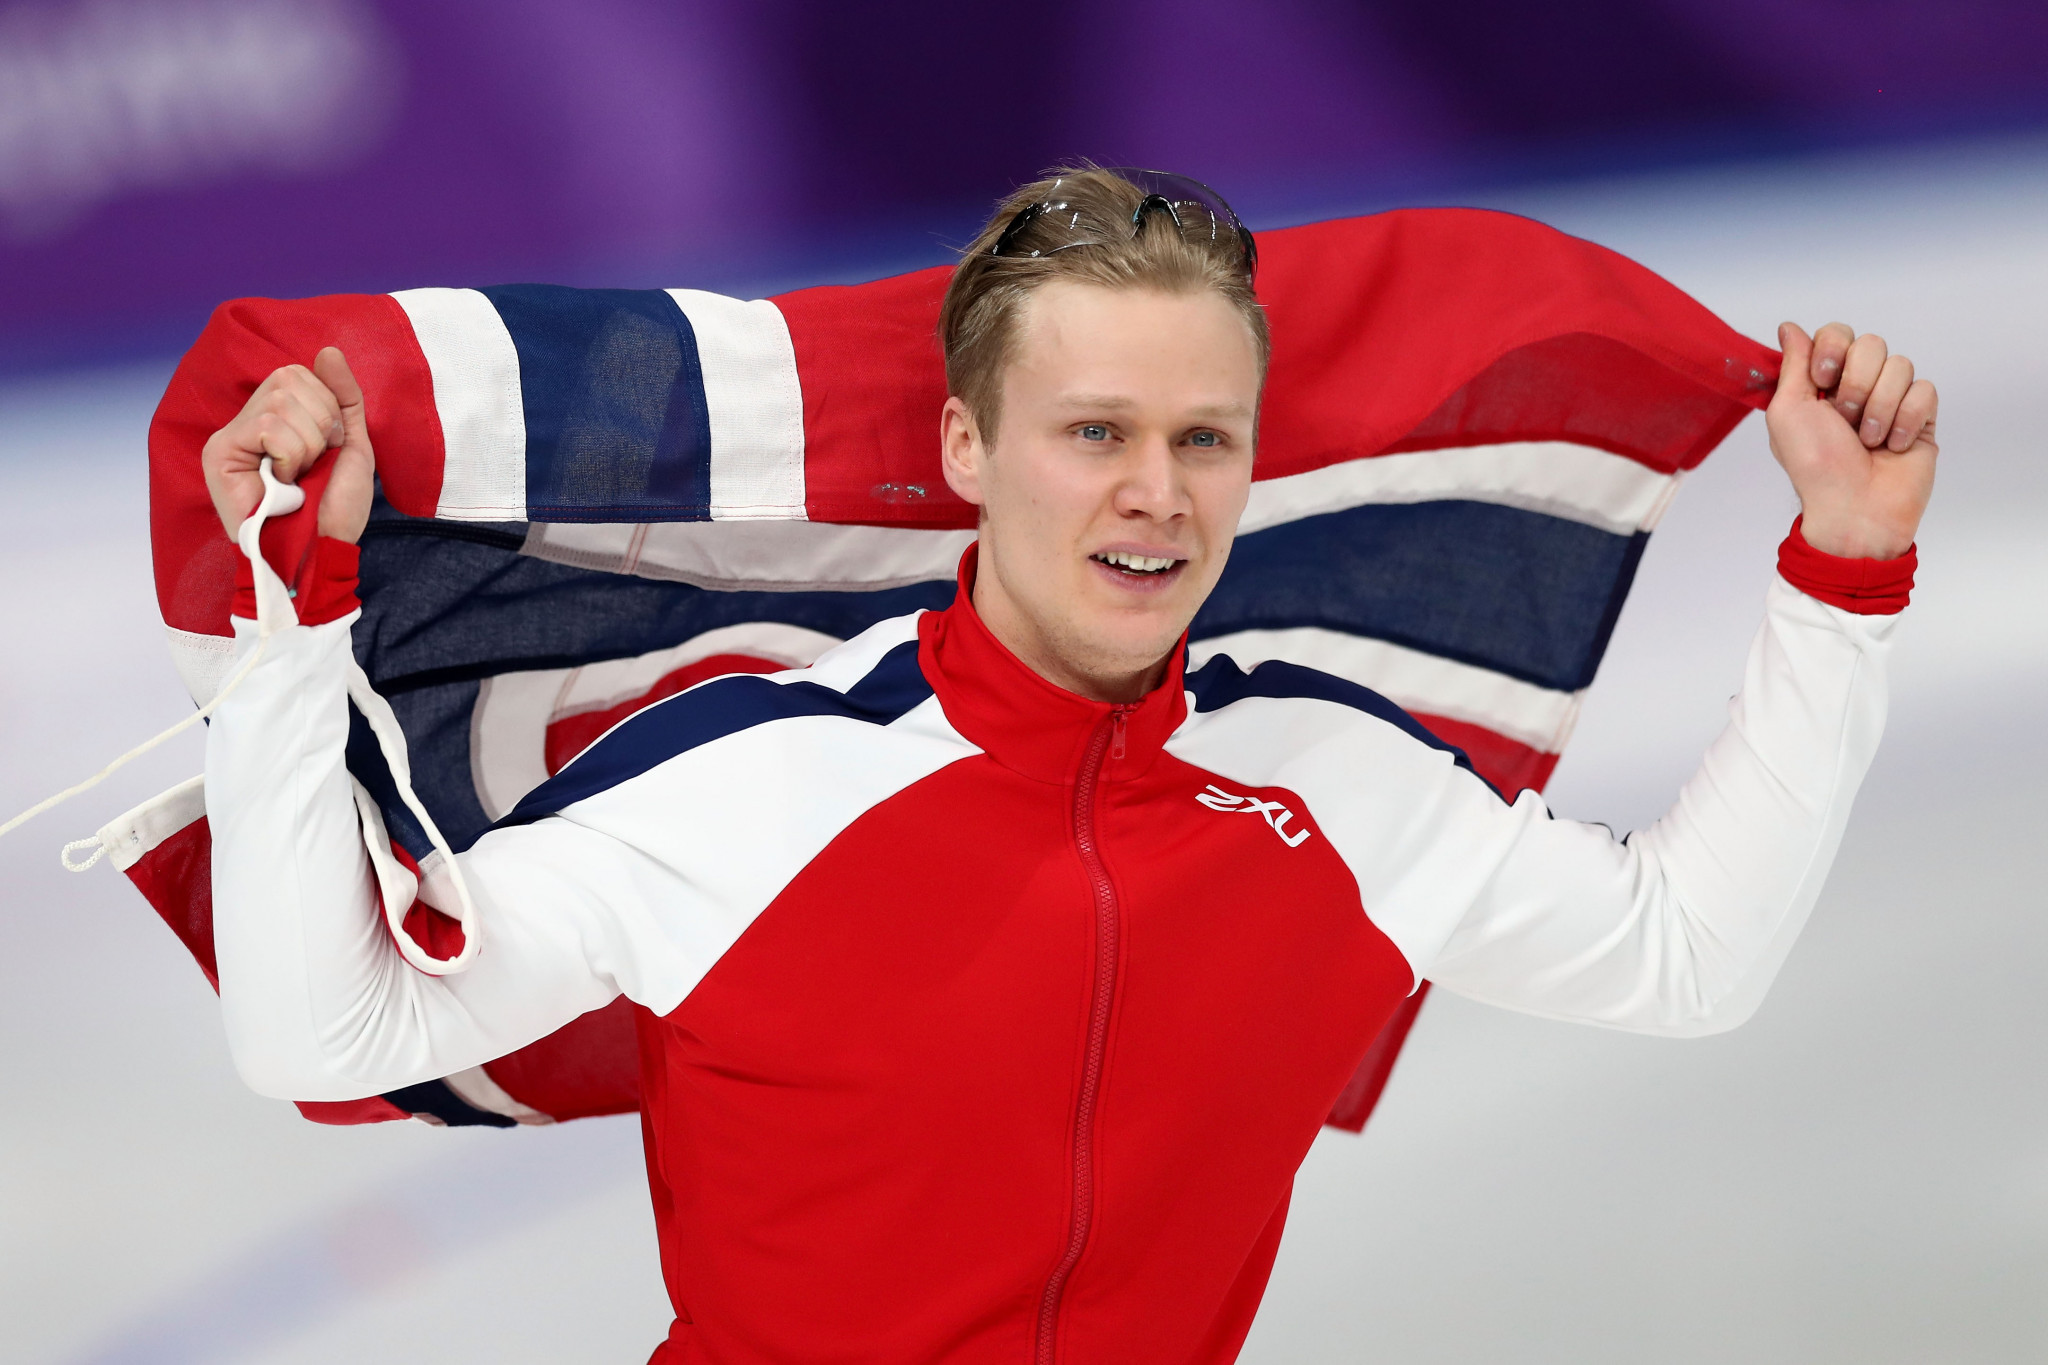 Norway's Håvard Lorentzen secured his country's first speed skating gold medal for two decades ©Getty Images